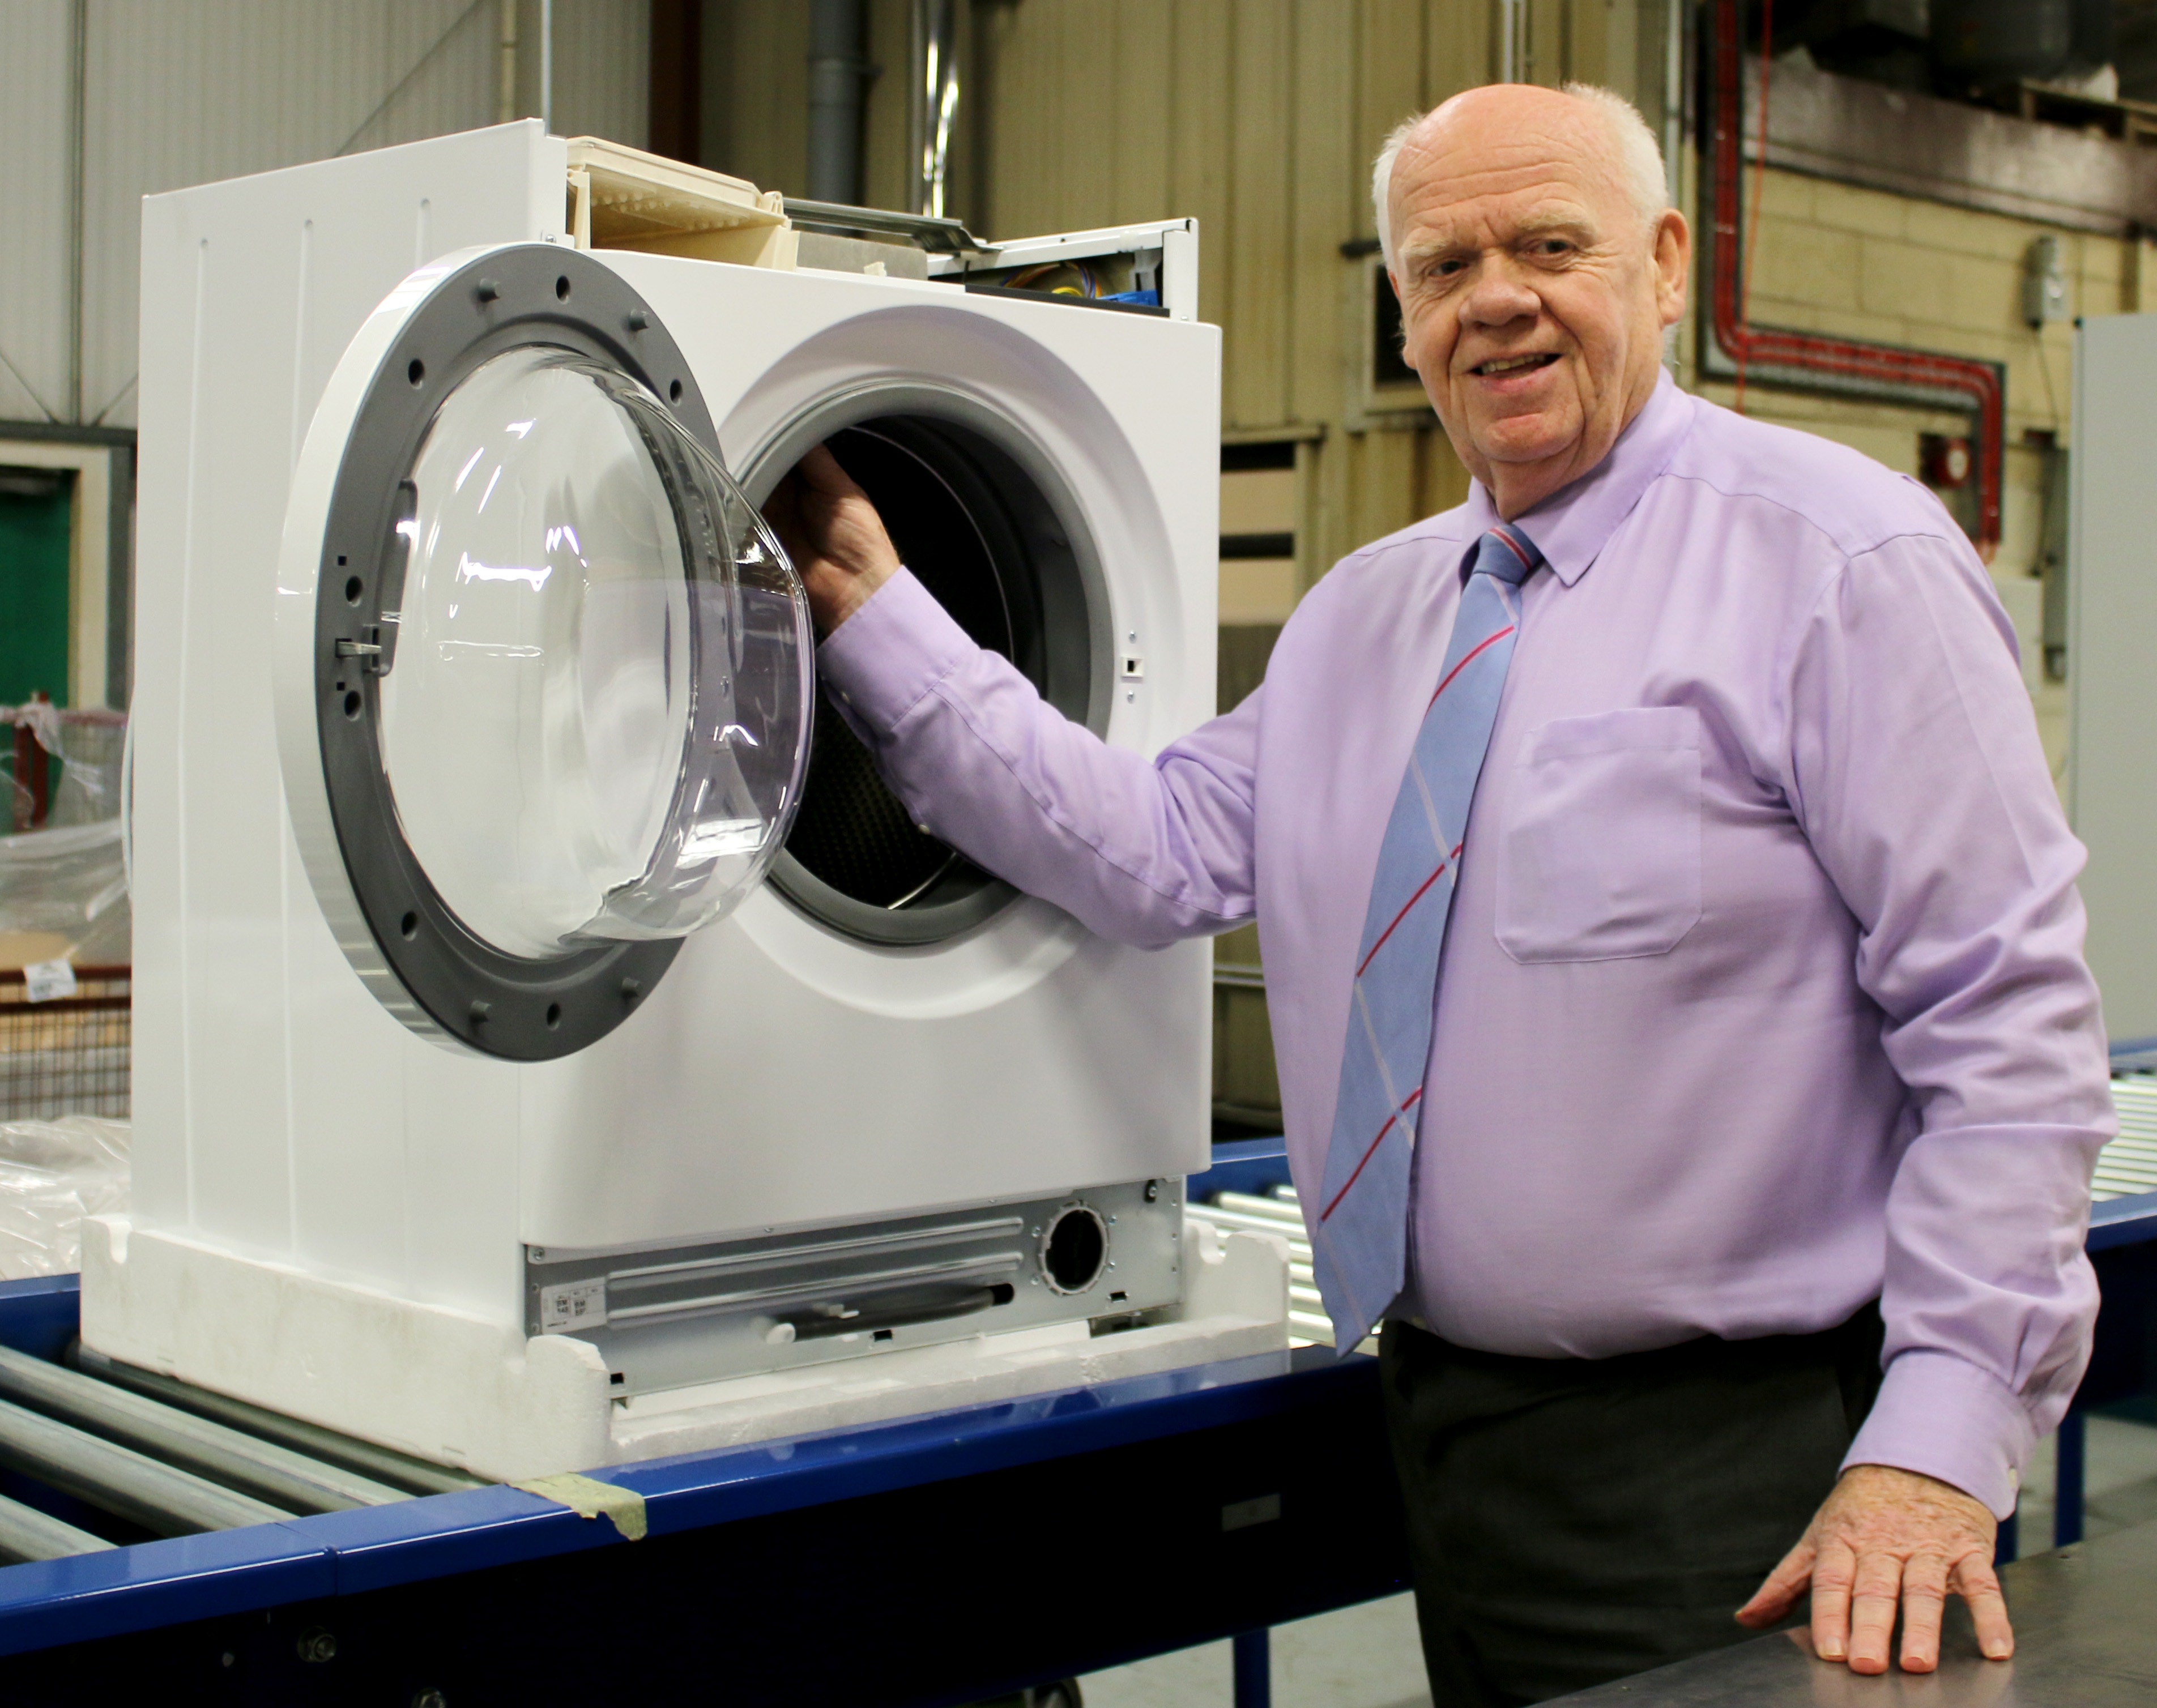 Ebac's Washing Machines Now in Full Production